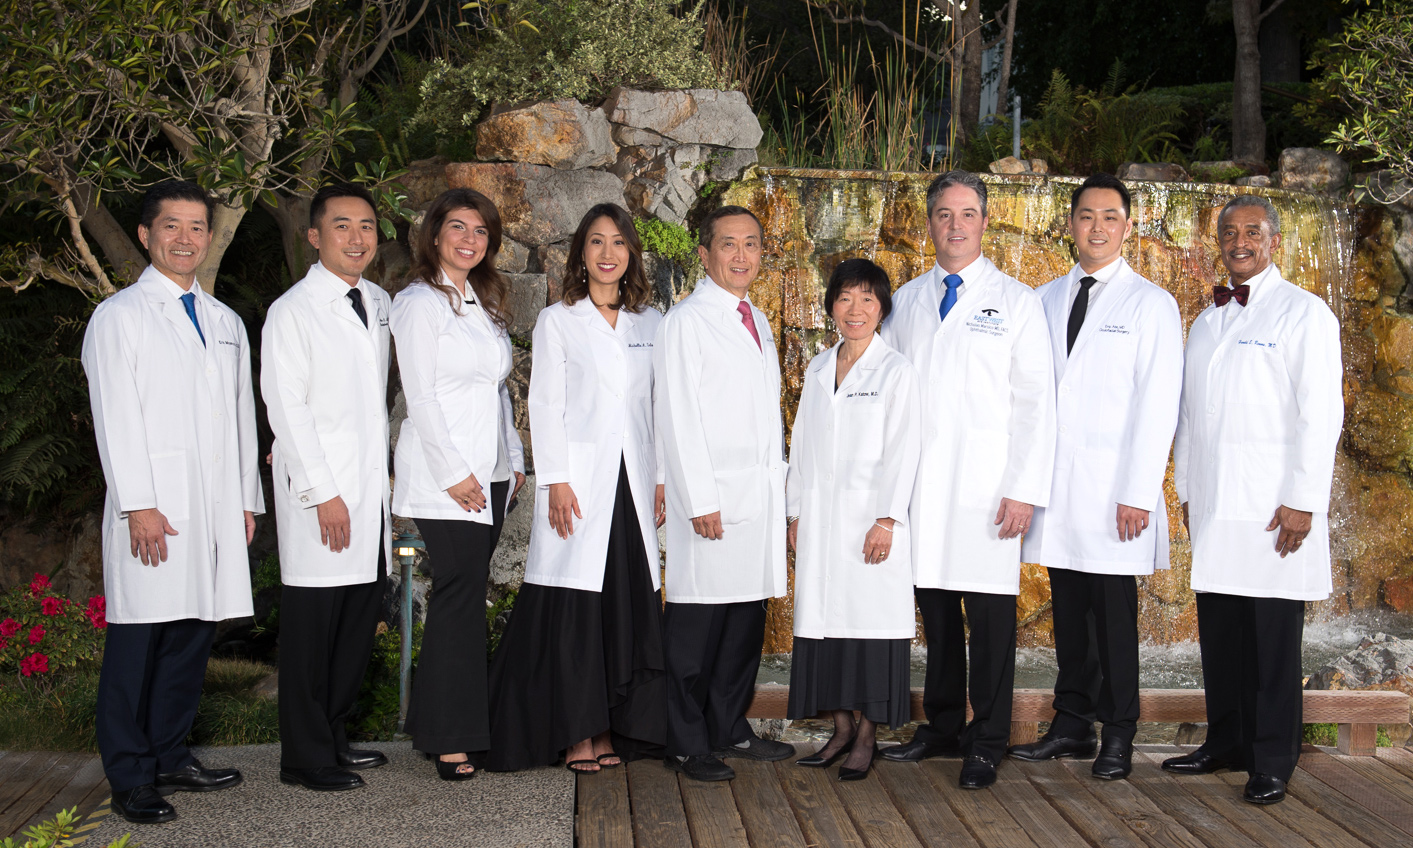 EWE_Doctors-Group_109